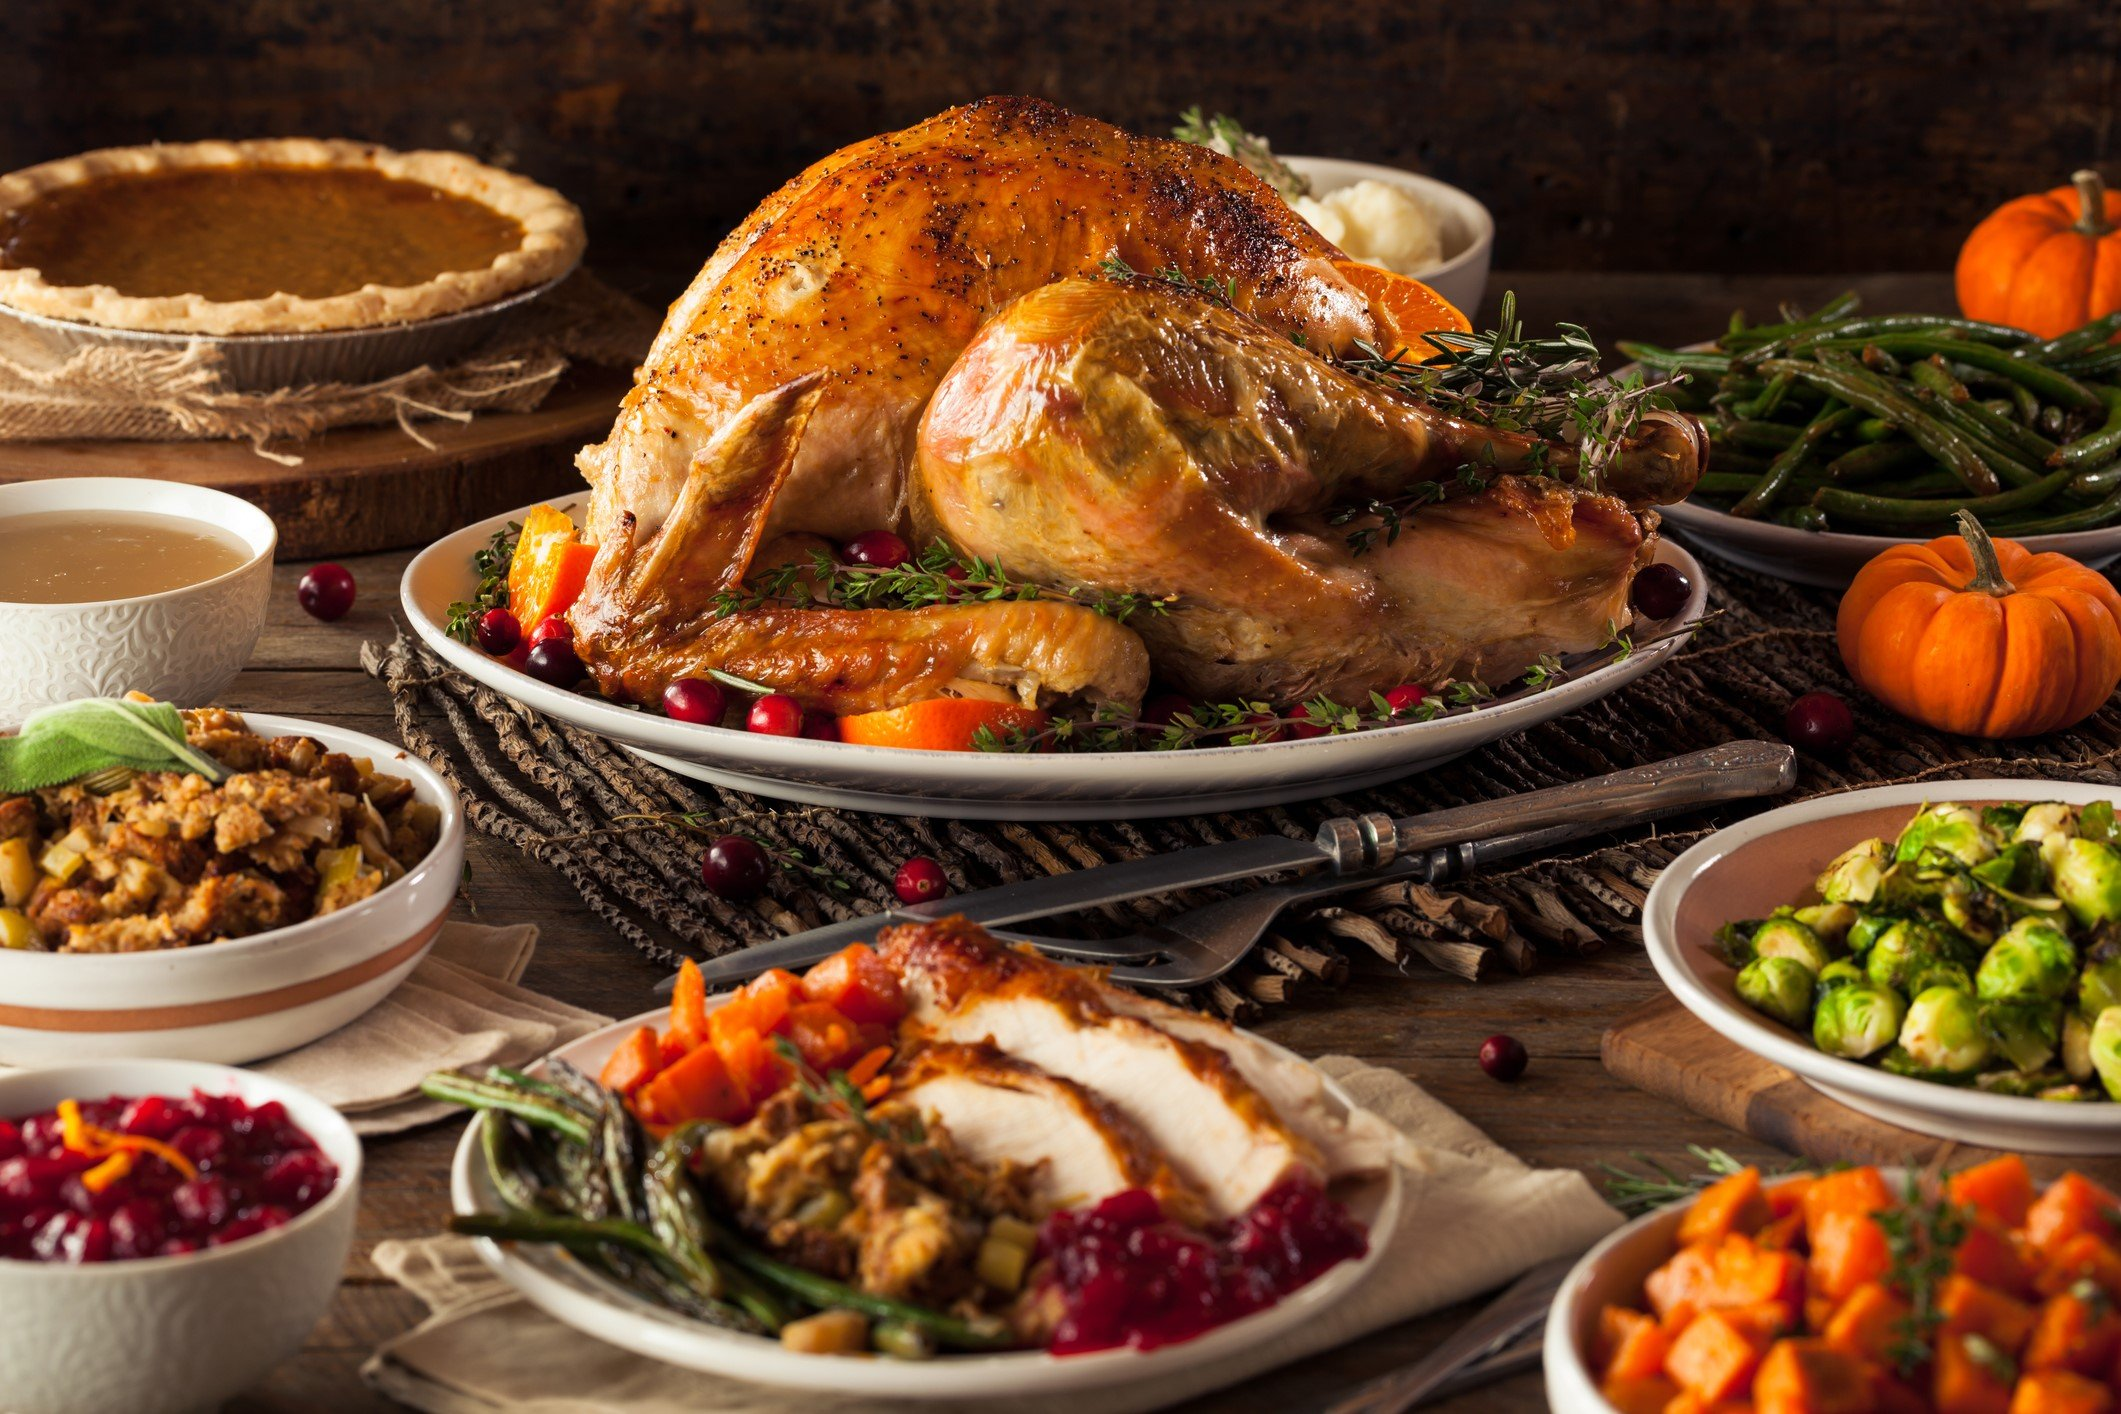 Emotet's Thanksgiving Campaign Delivers New Recipes for Compromise